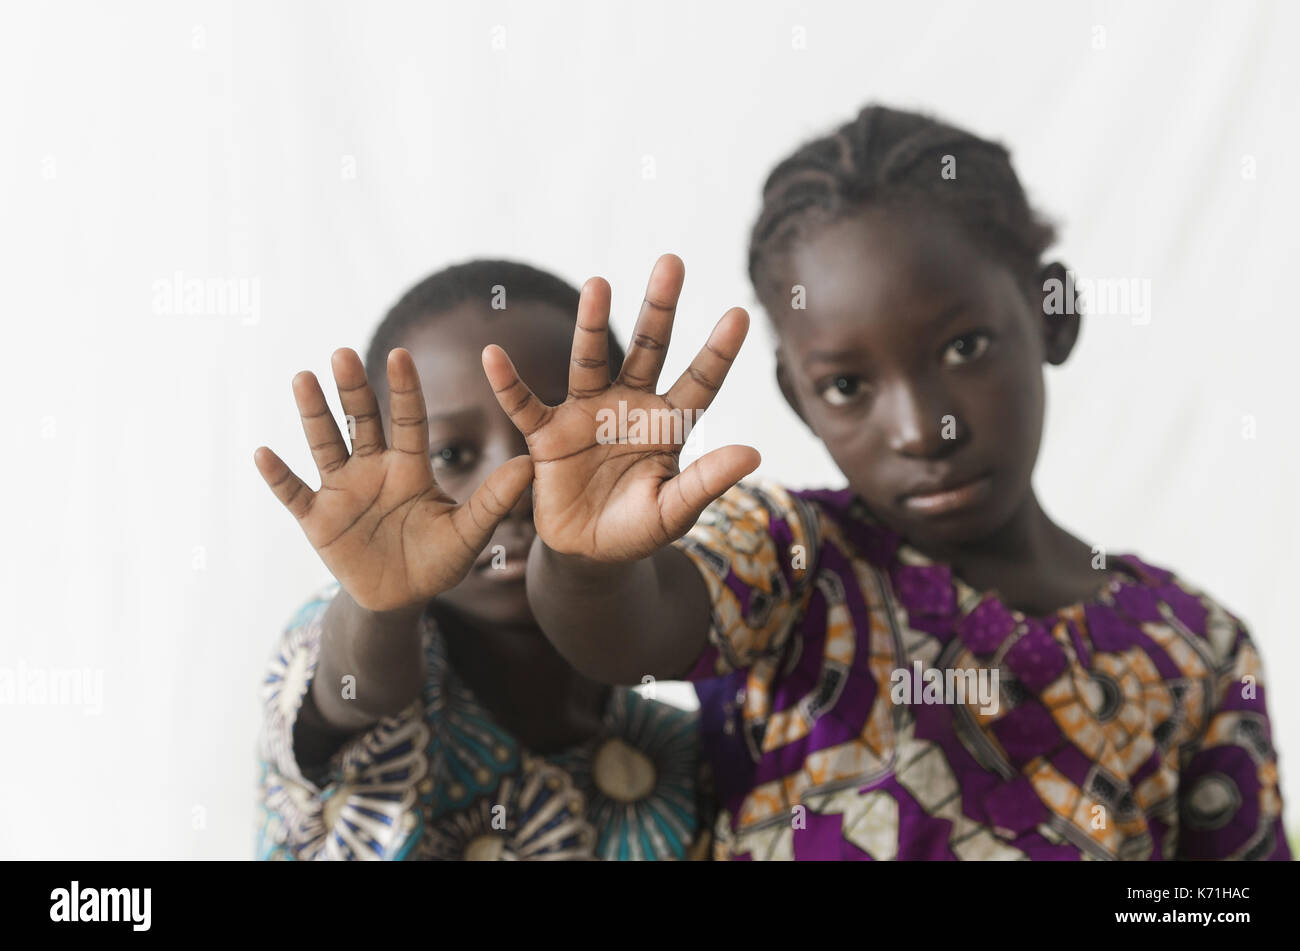 Two African children making stop sign with their hands, isolated on white - Stock Image